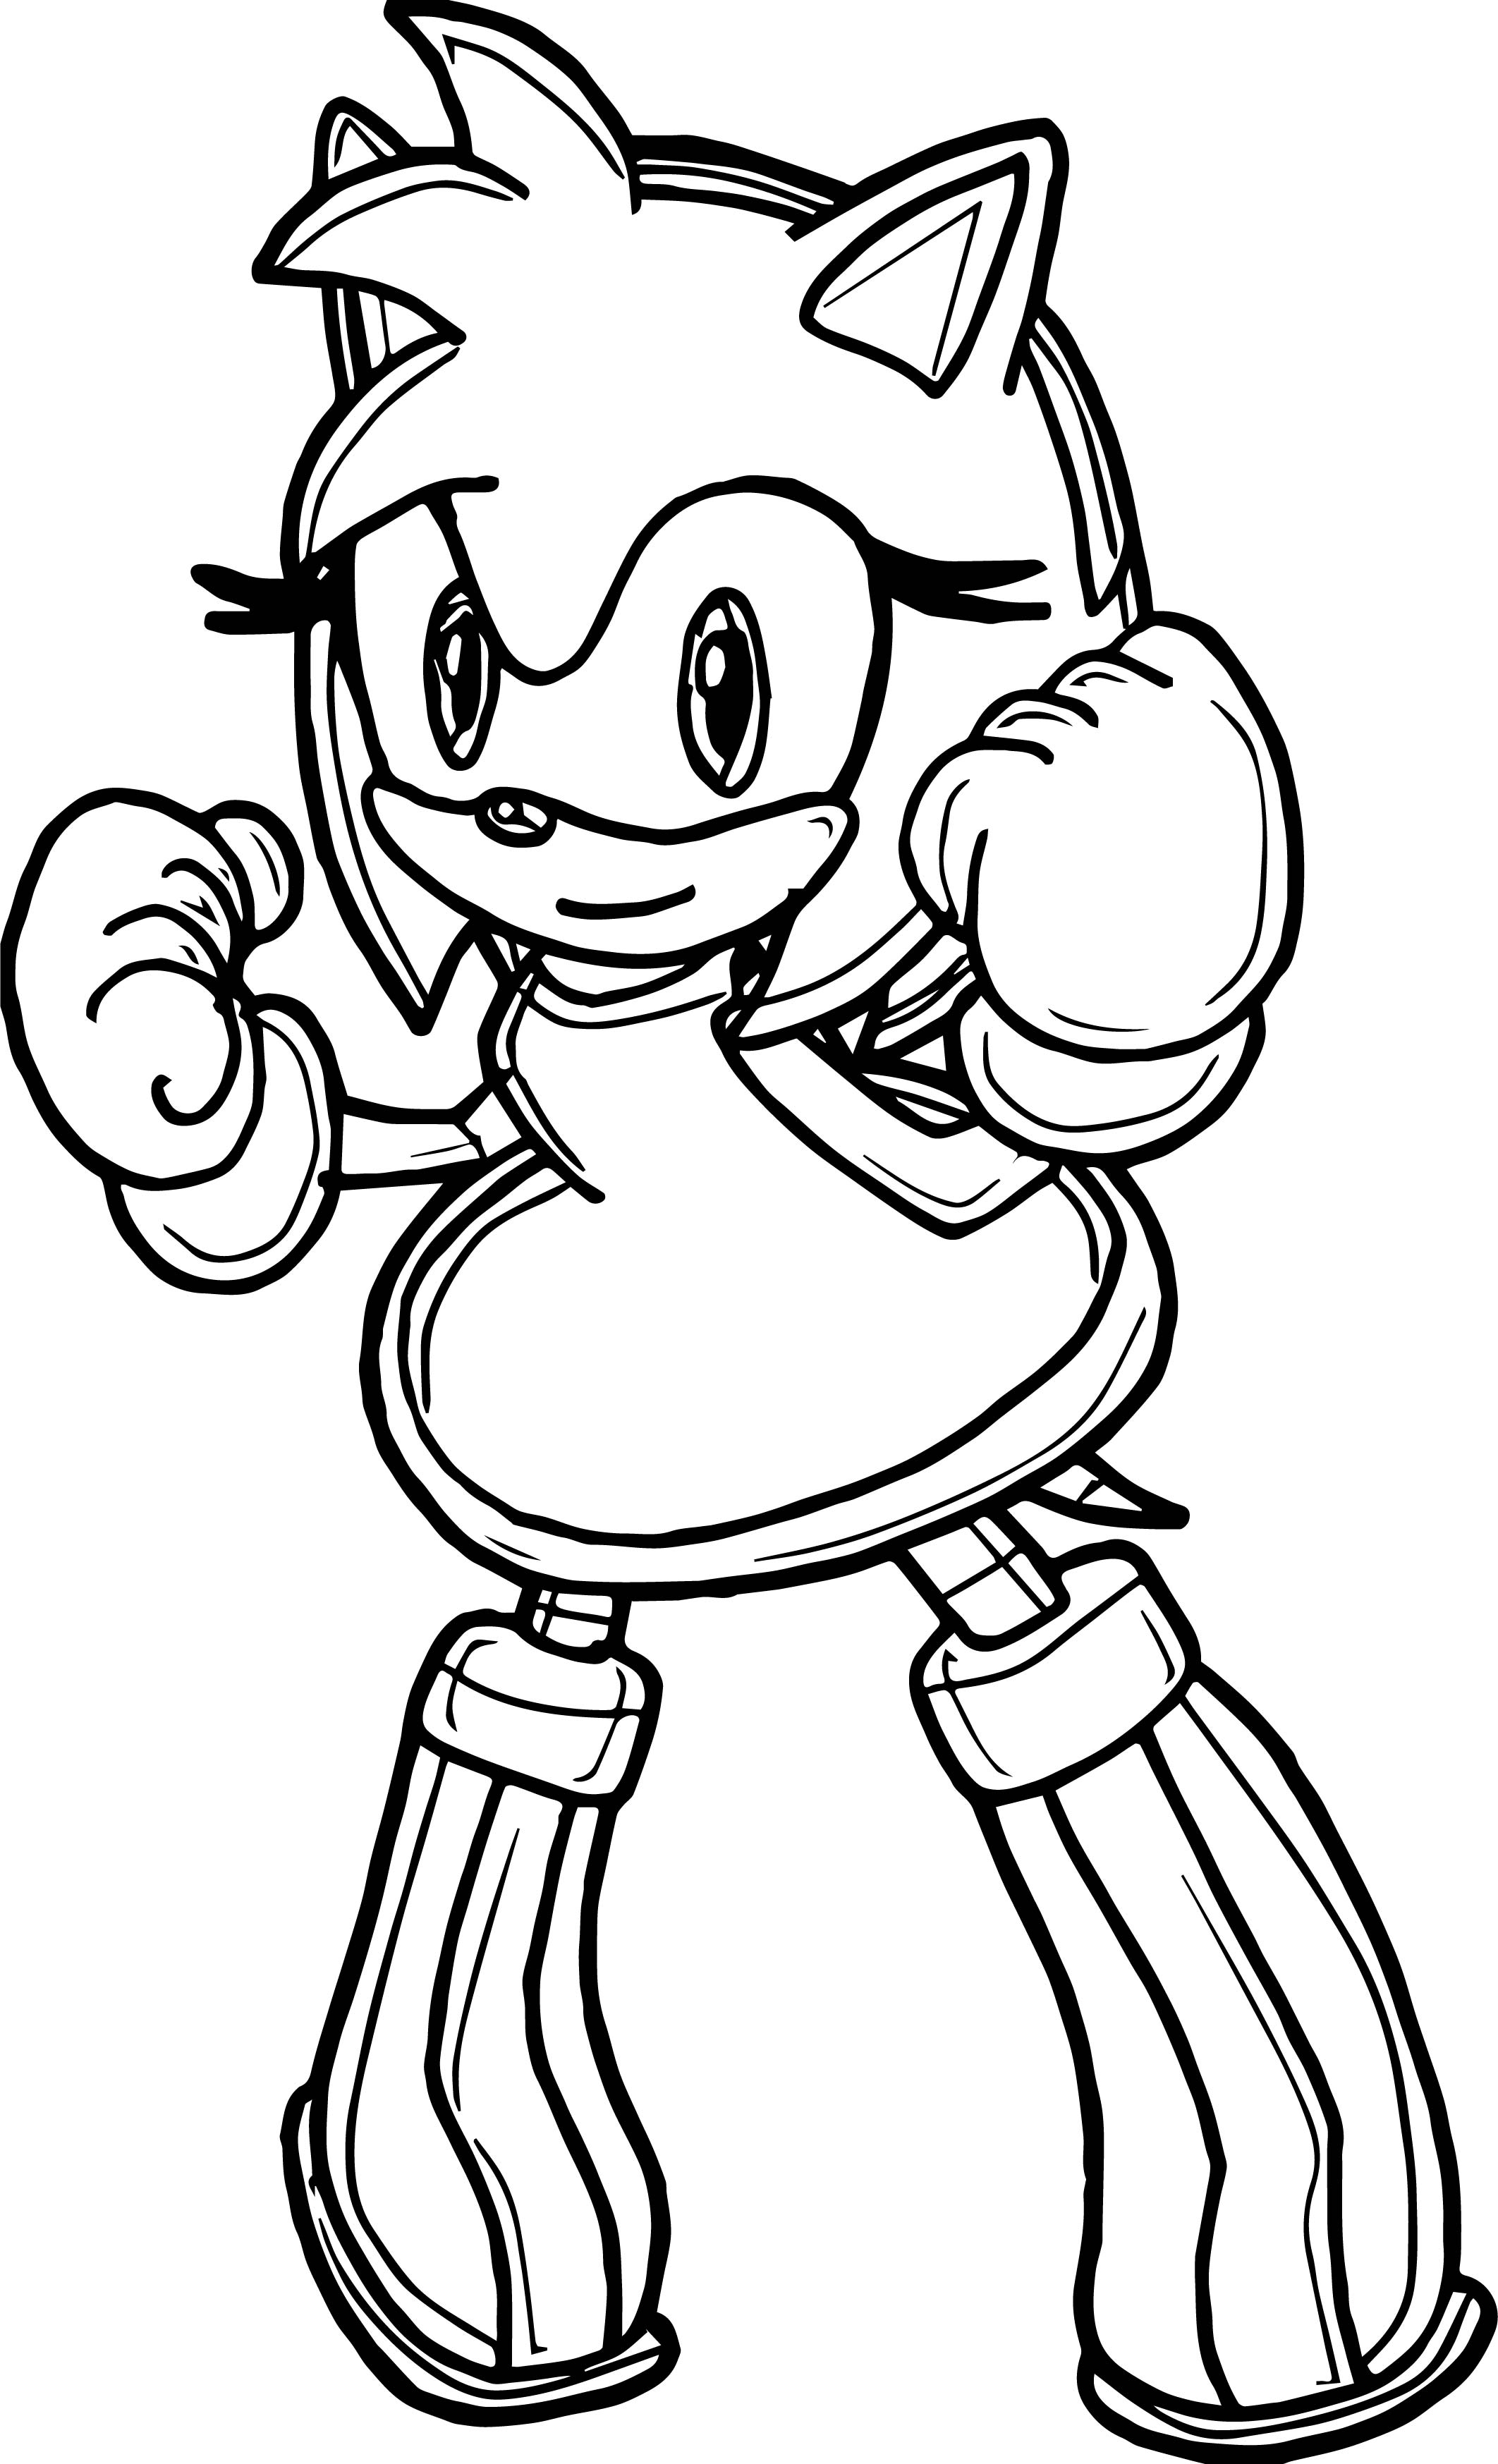 Amy Rose Punch Coloring Page